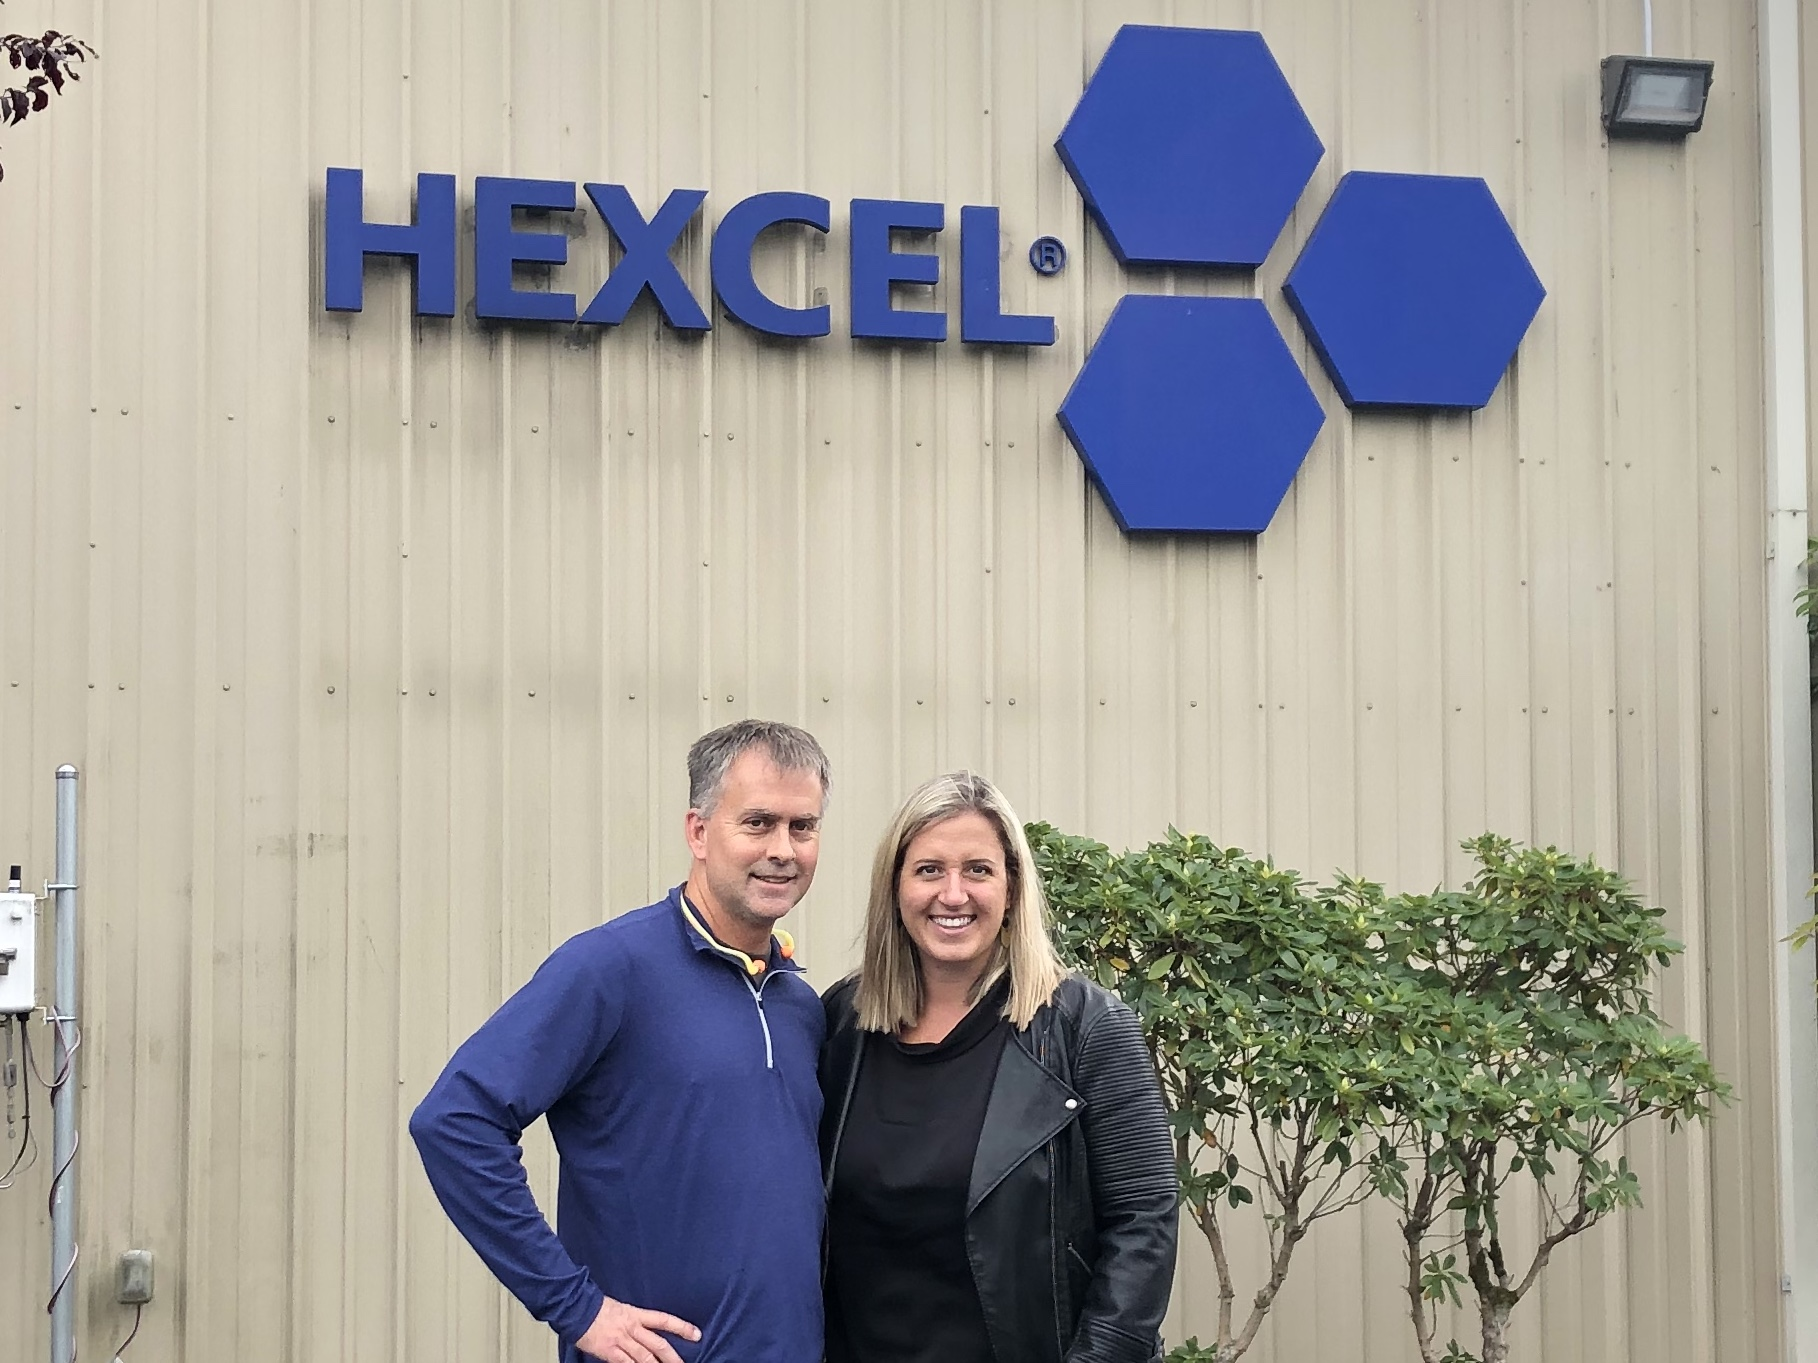 City Council Member, Brad Adams, and I taking a tour of Hexcel. A great example of light manufacturing, Hexcel produces honeycomb products for the aerospace industry. Adams has spent his career with the company.